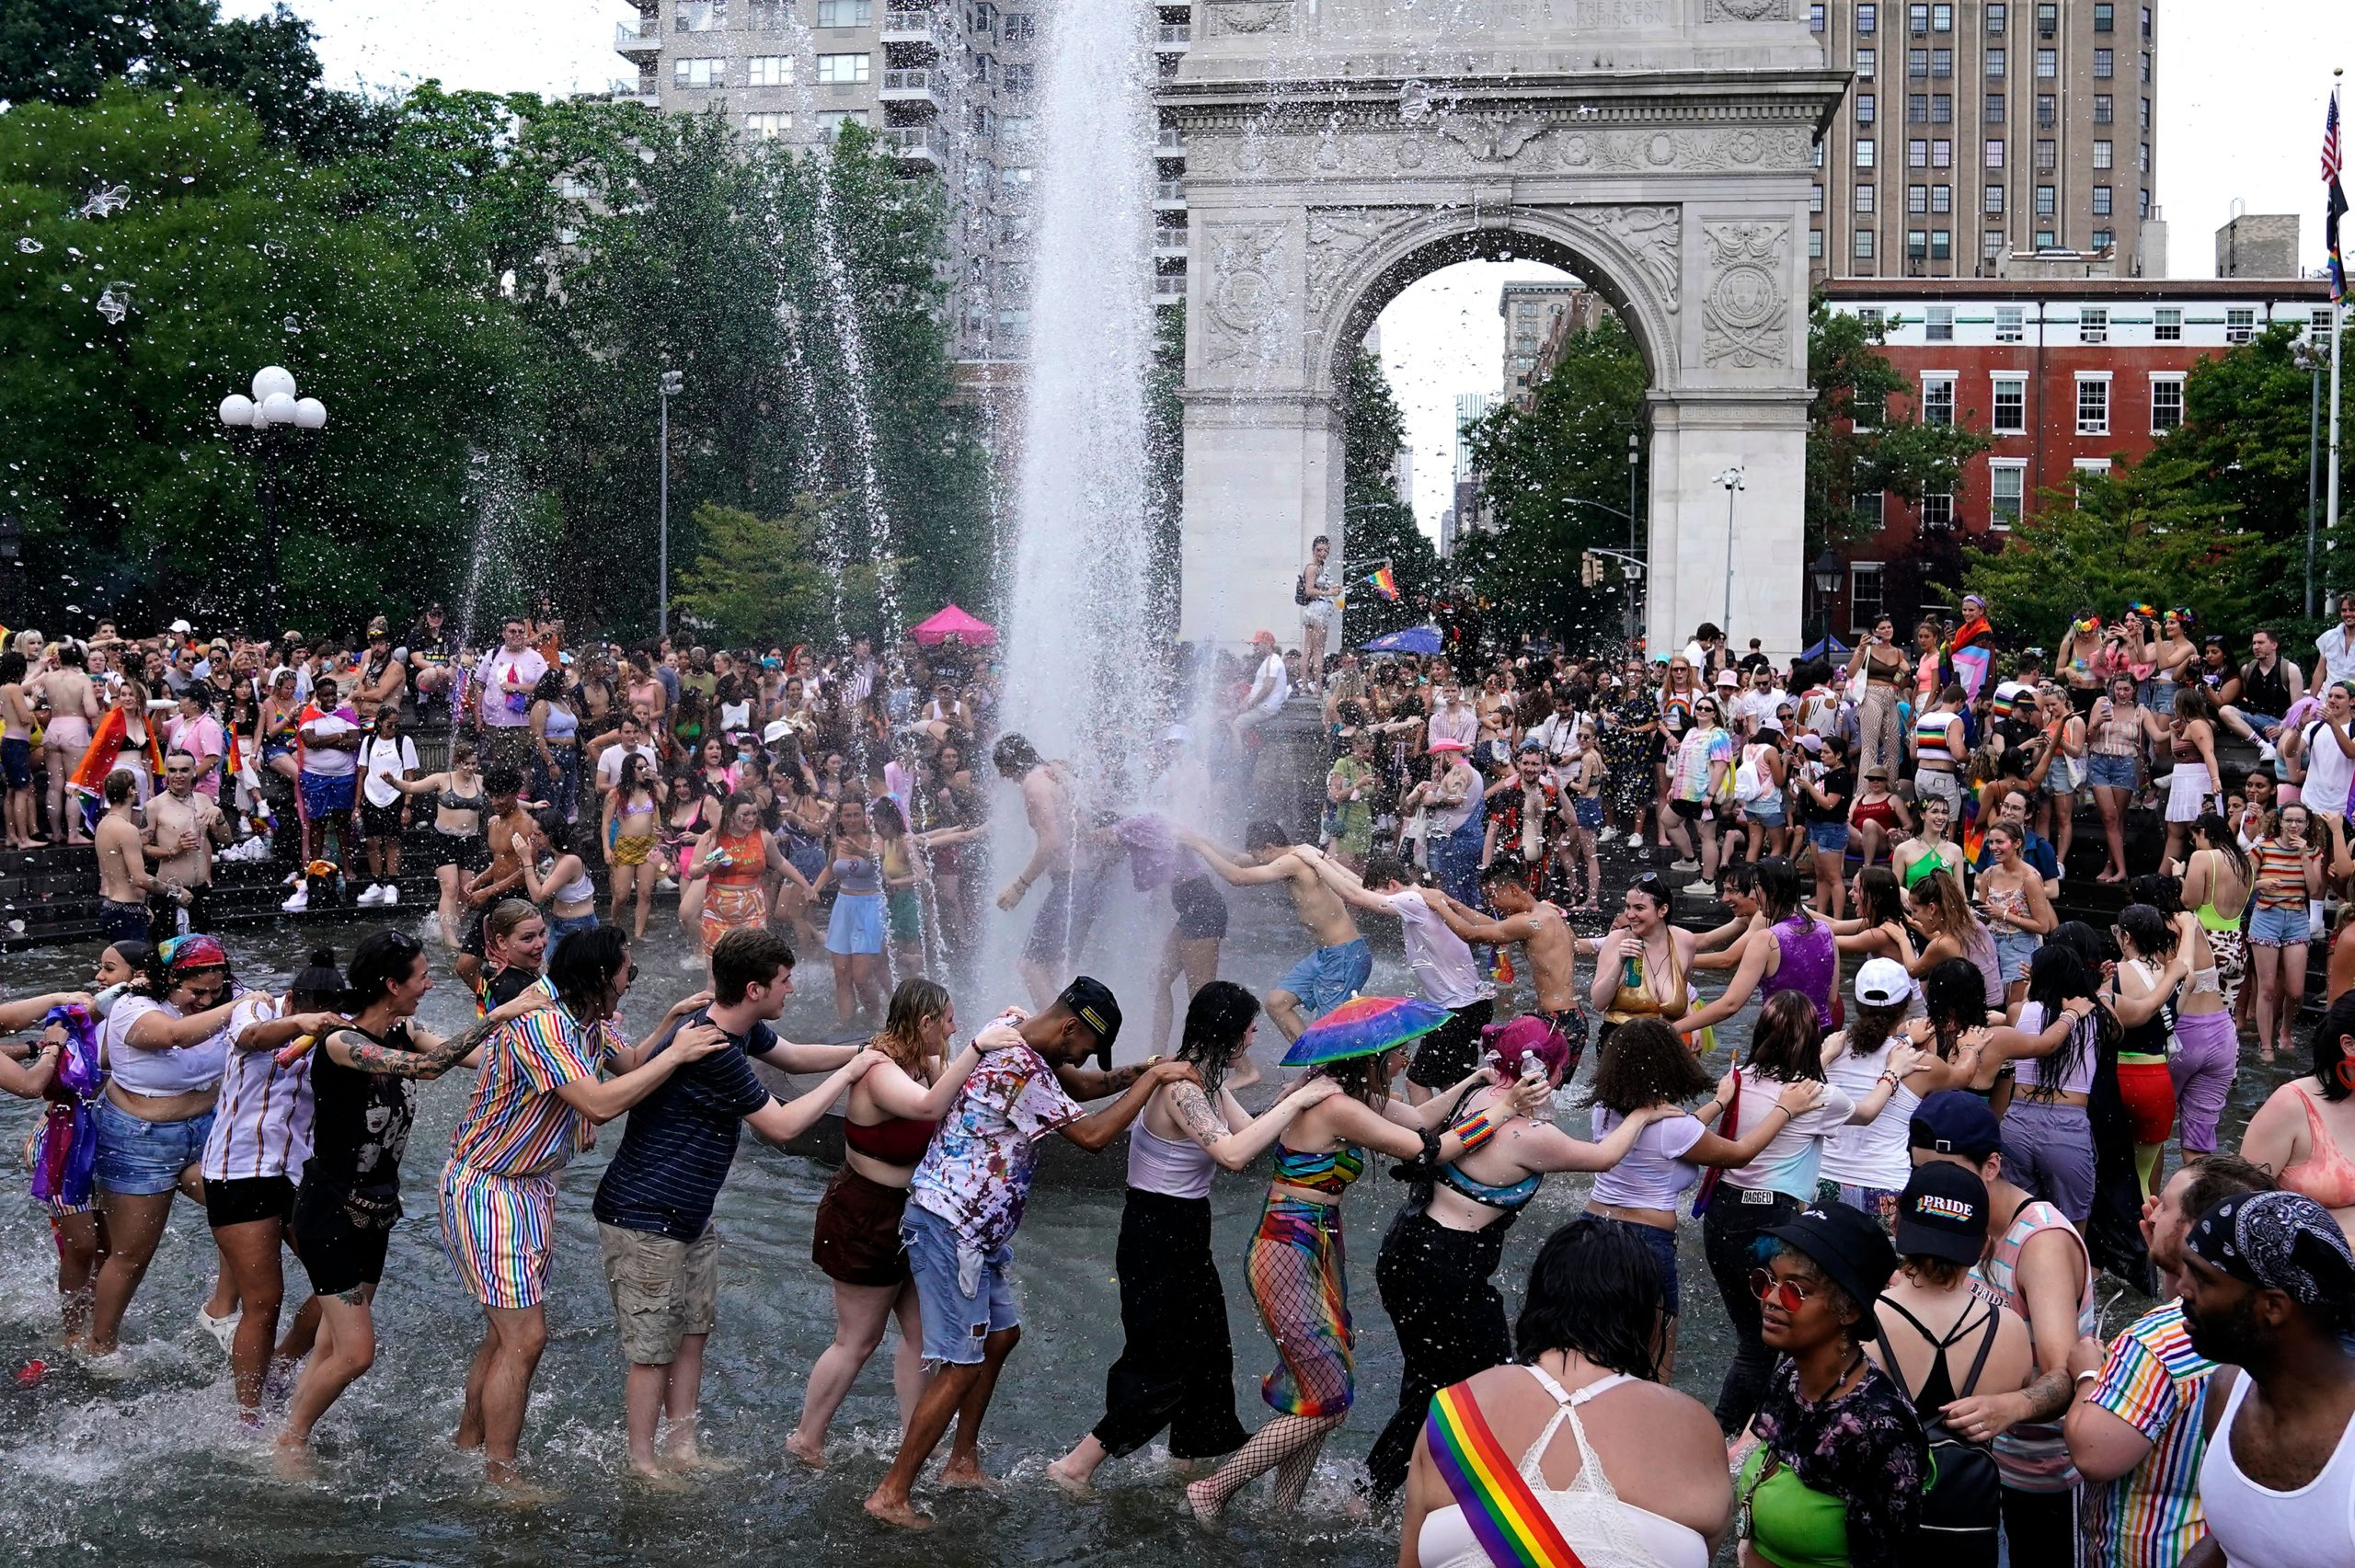 People dance in the Washington Square Fountain during the 3rd annual Queer Liberation March in New York June 27, 2021. (Photo by TIMOTHY A. CLARY/AFP via Getty Images)